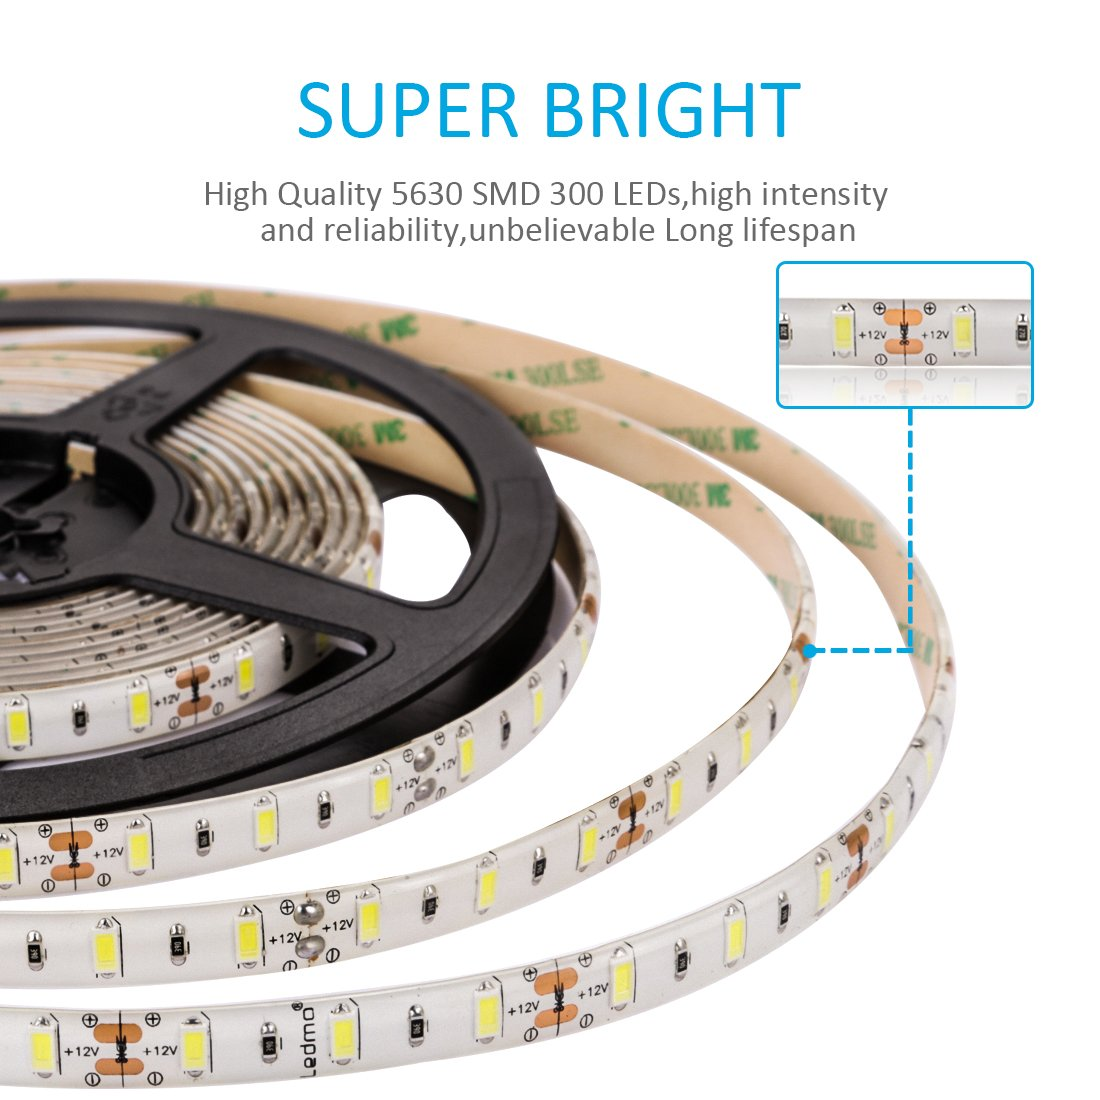 LED Strip Lights, SMD5630 Super Bright 6000K Tape Lighting 300 Units, 12V DC Waterproof, Light Strips, LED ribbon, DIY Christmas Holiday Home Kitchen Car Bar Indoor Party Decoration (Daylight White)